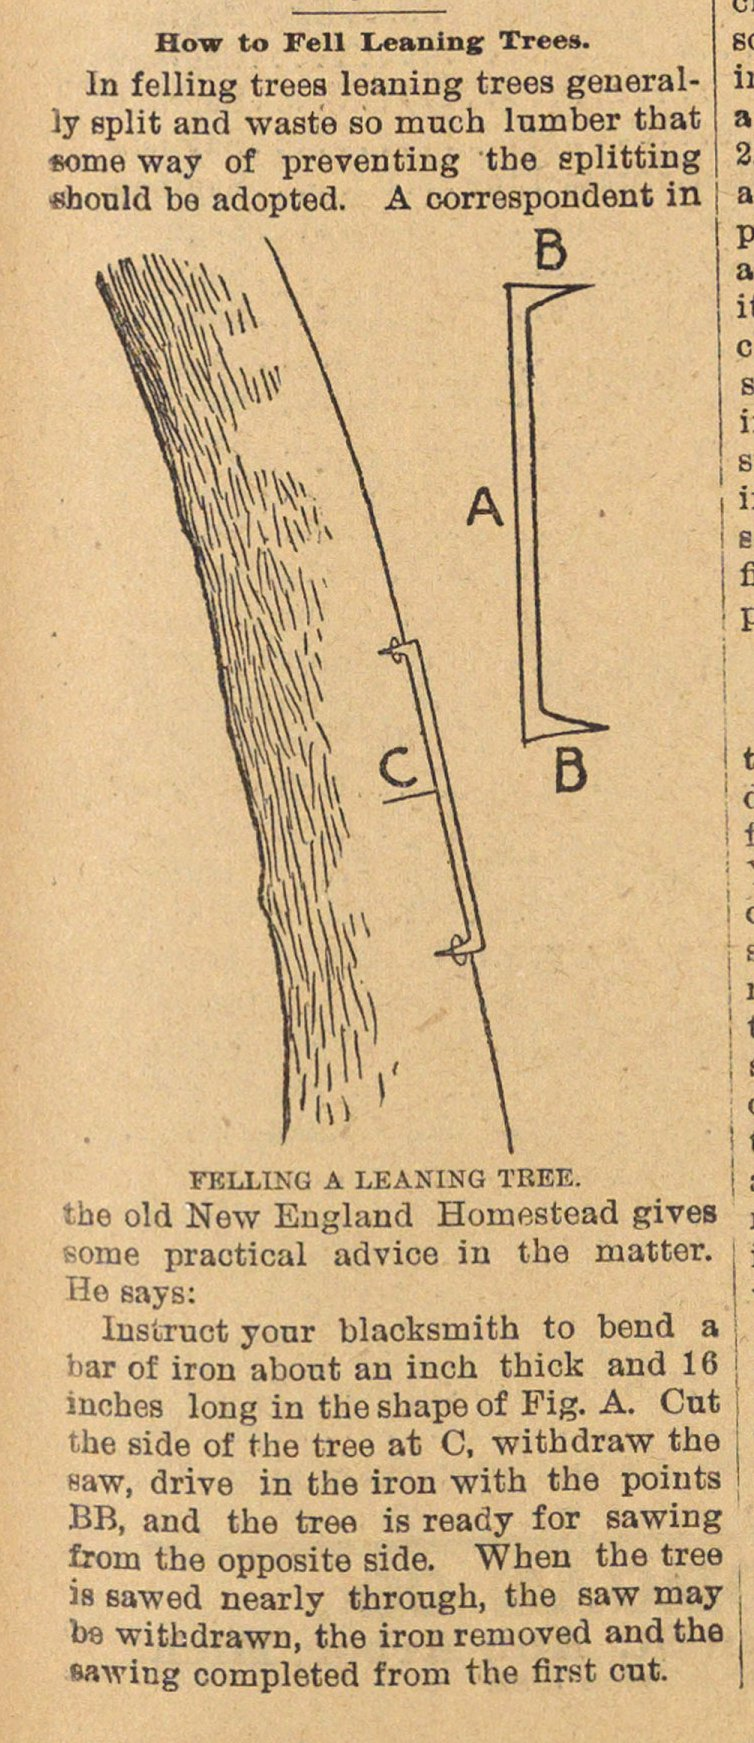 How To Fell Leaning Trees image